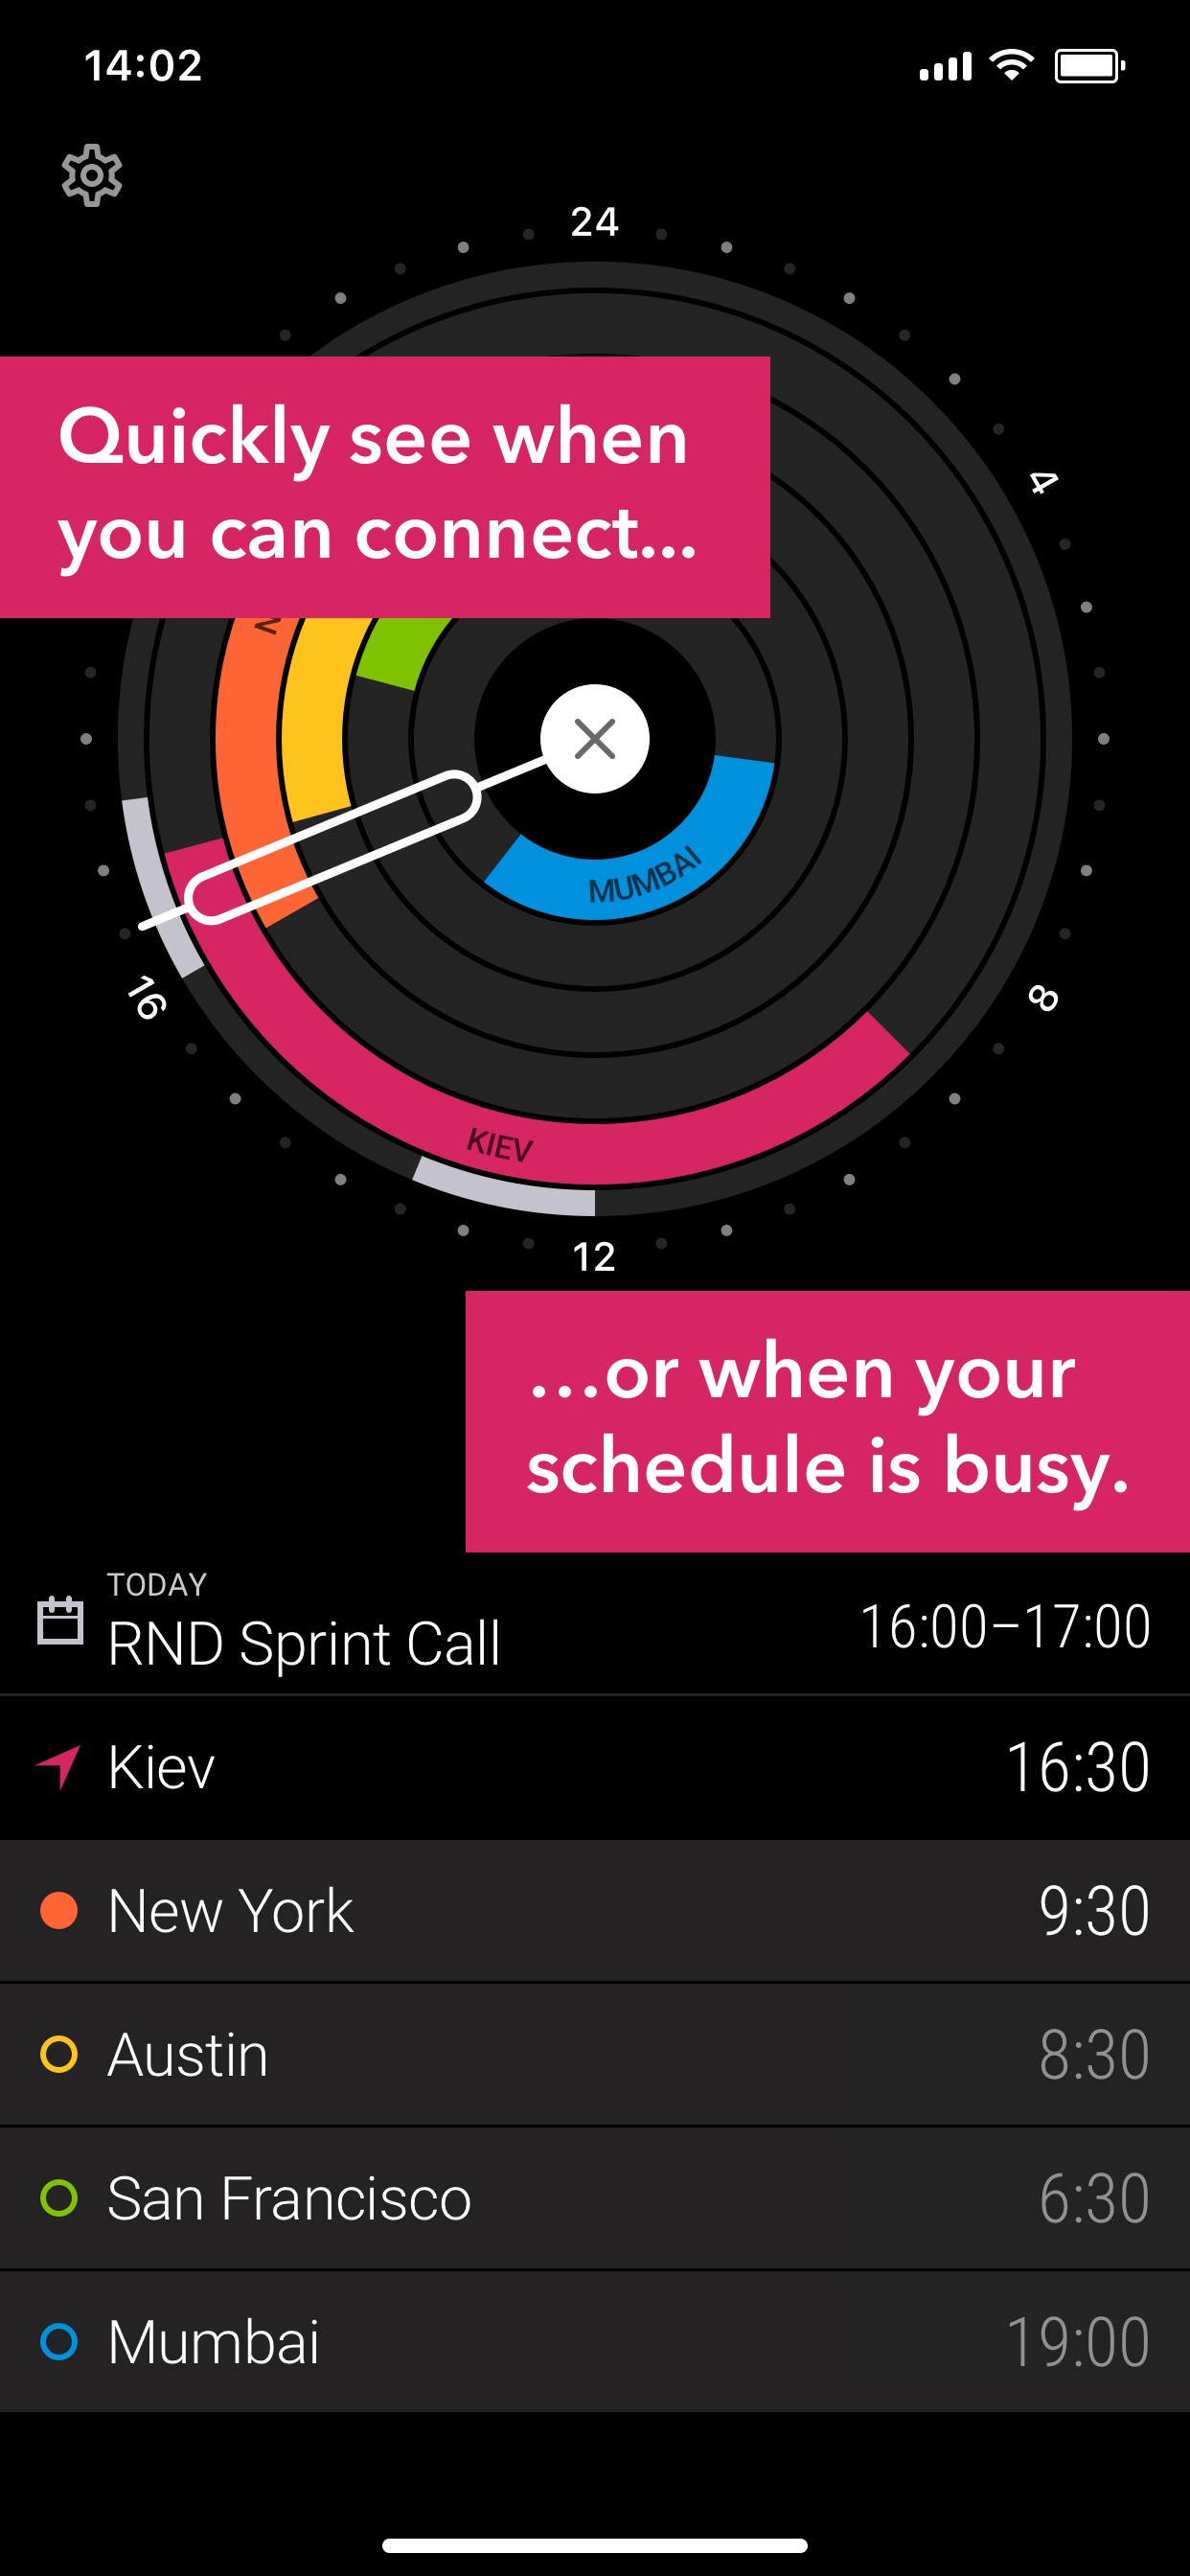 Quickly see when you can connect... or when your schedule is busy.